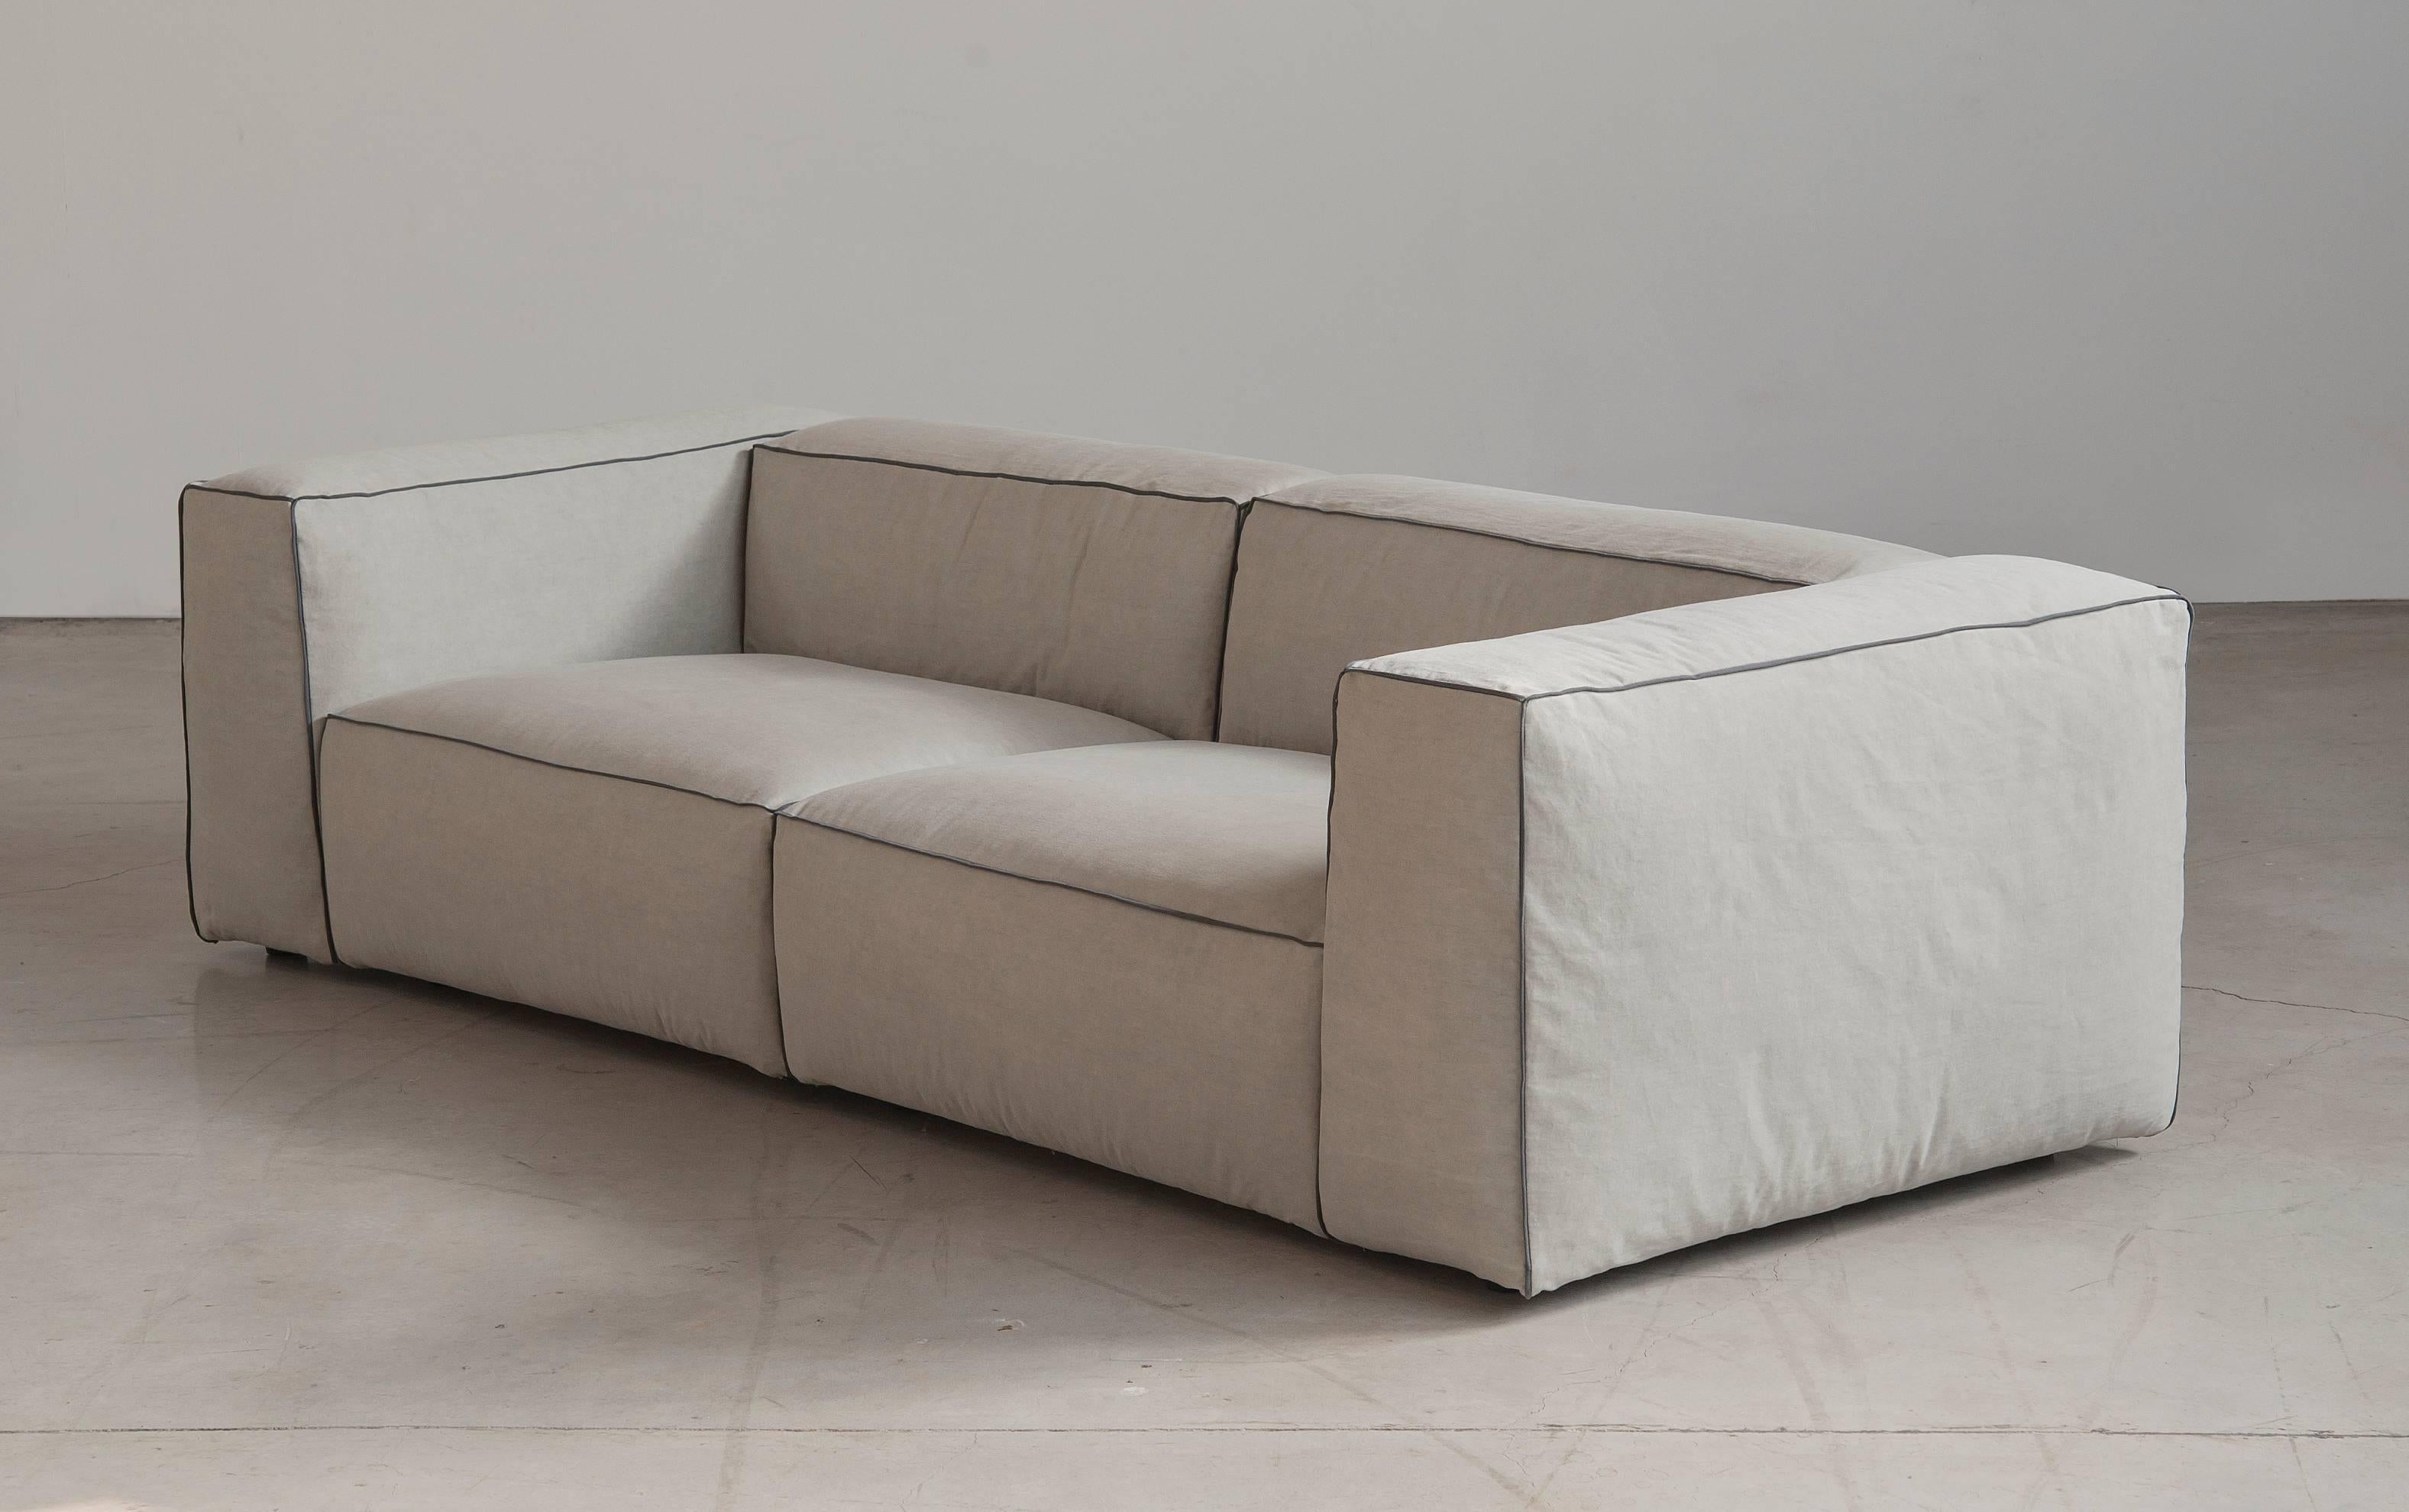 sofa 250cm oval oak table sifnos handmade contemporary modular fabric cover fixed seat is an ample inviting couch whose geometric volume and soft finish epitomise the concept